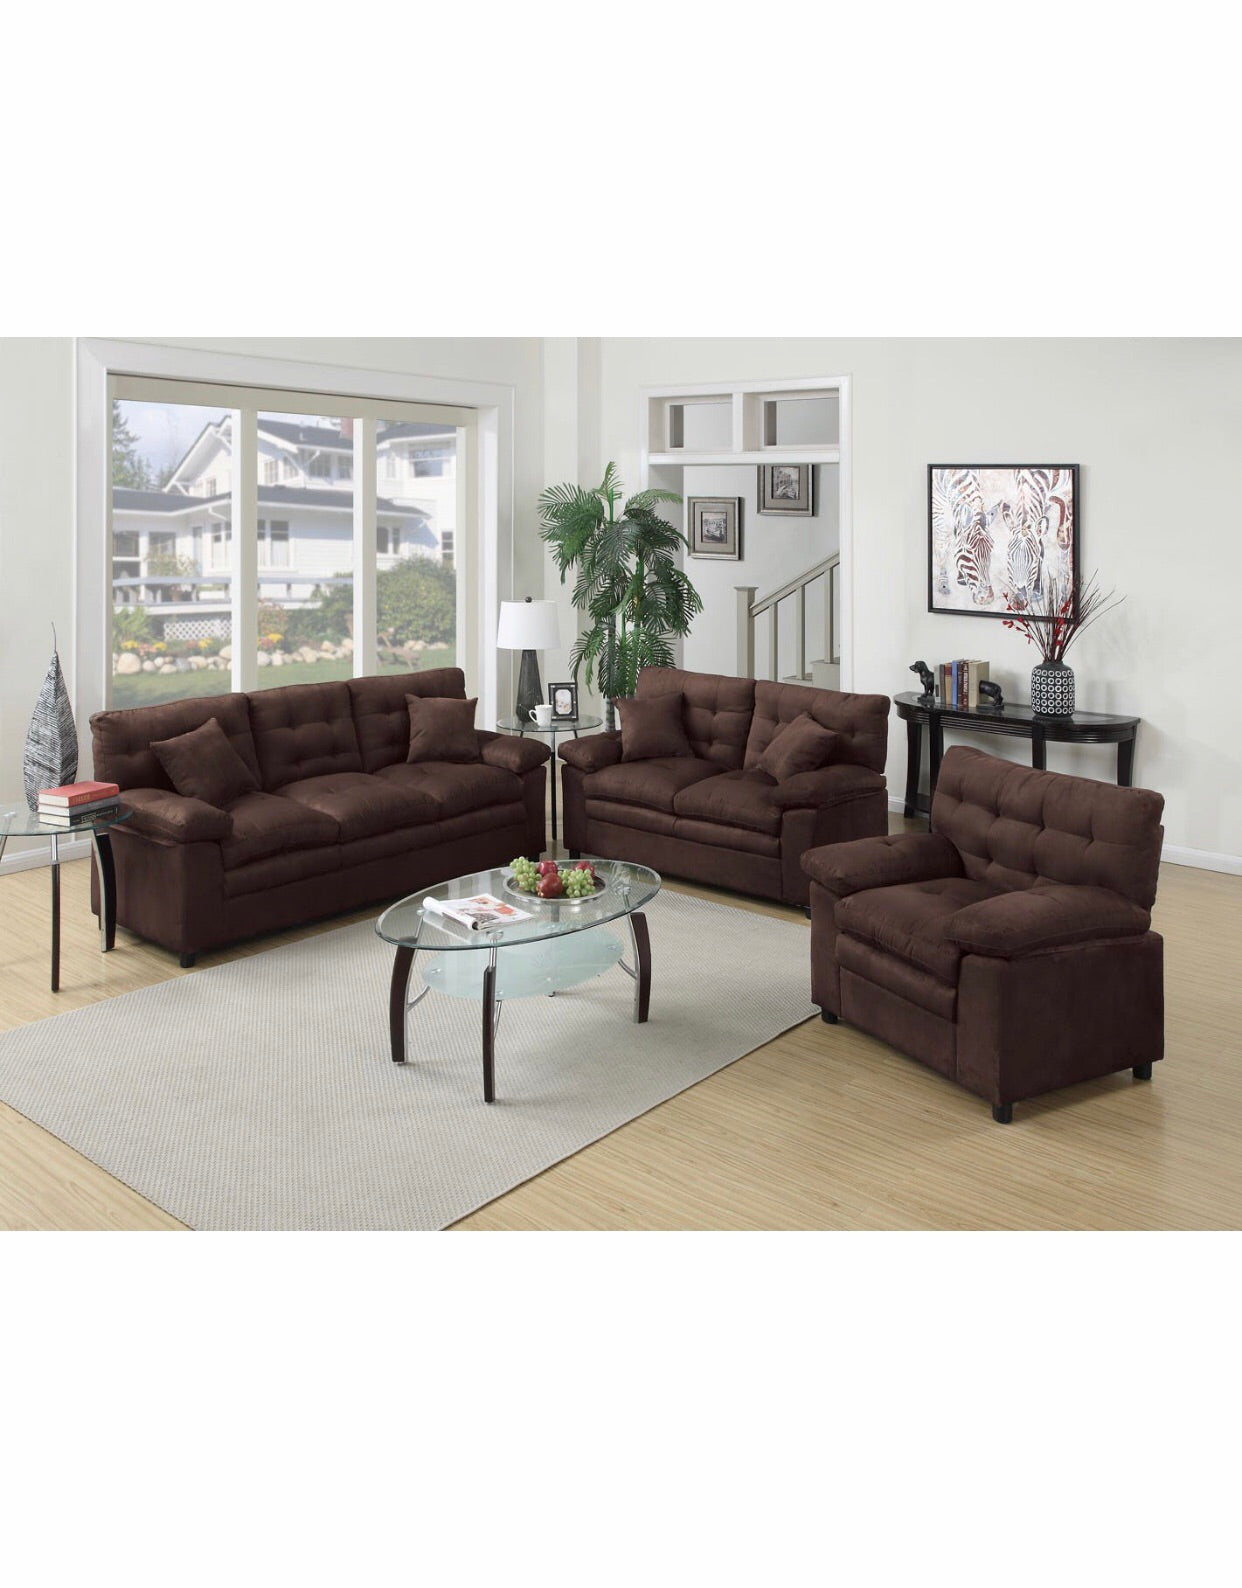 Kingston 3 piece living room set !